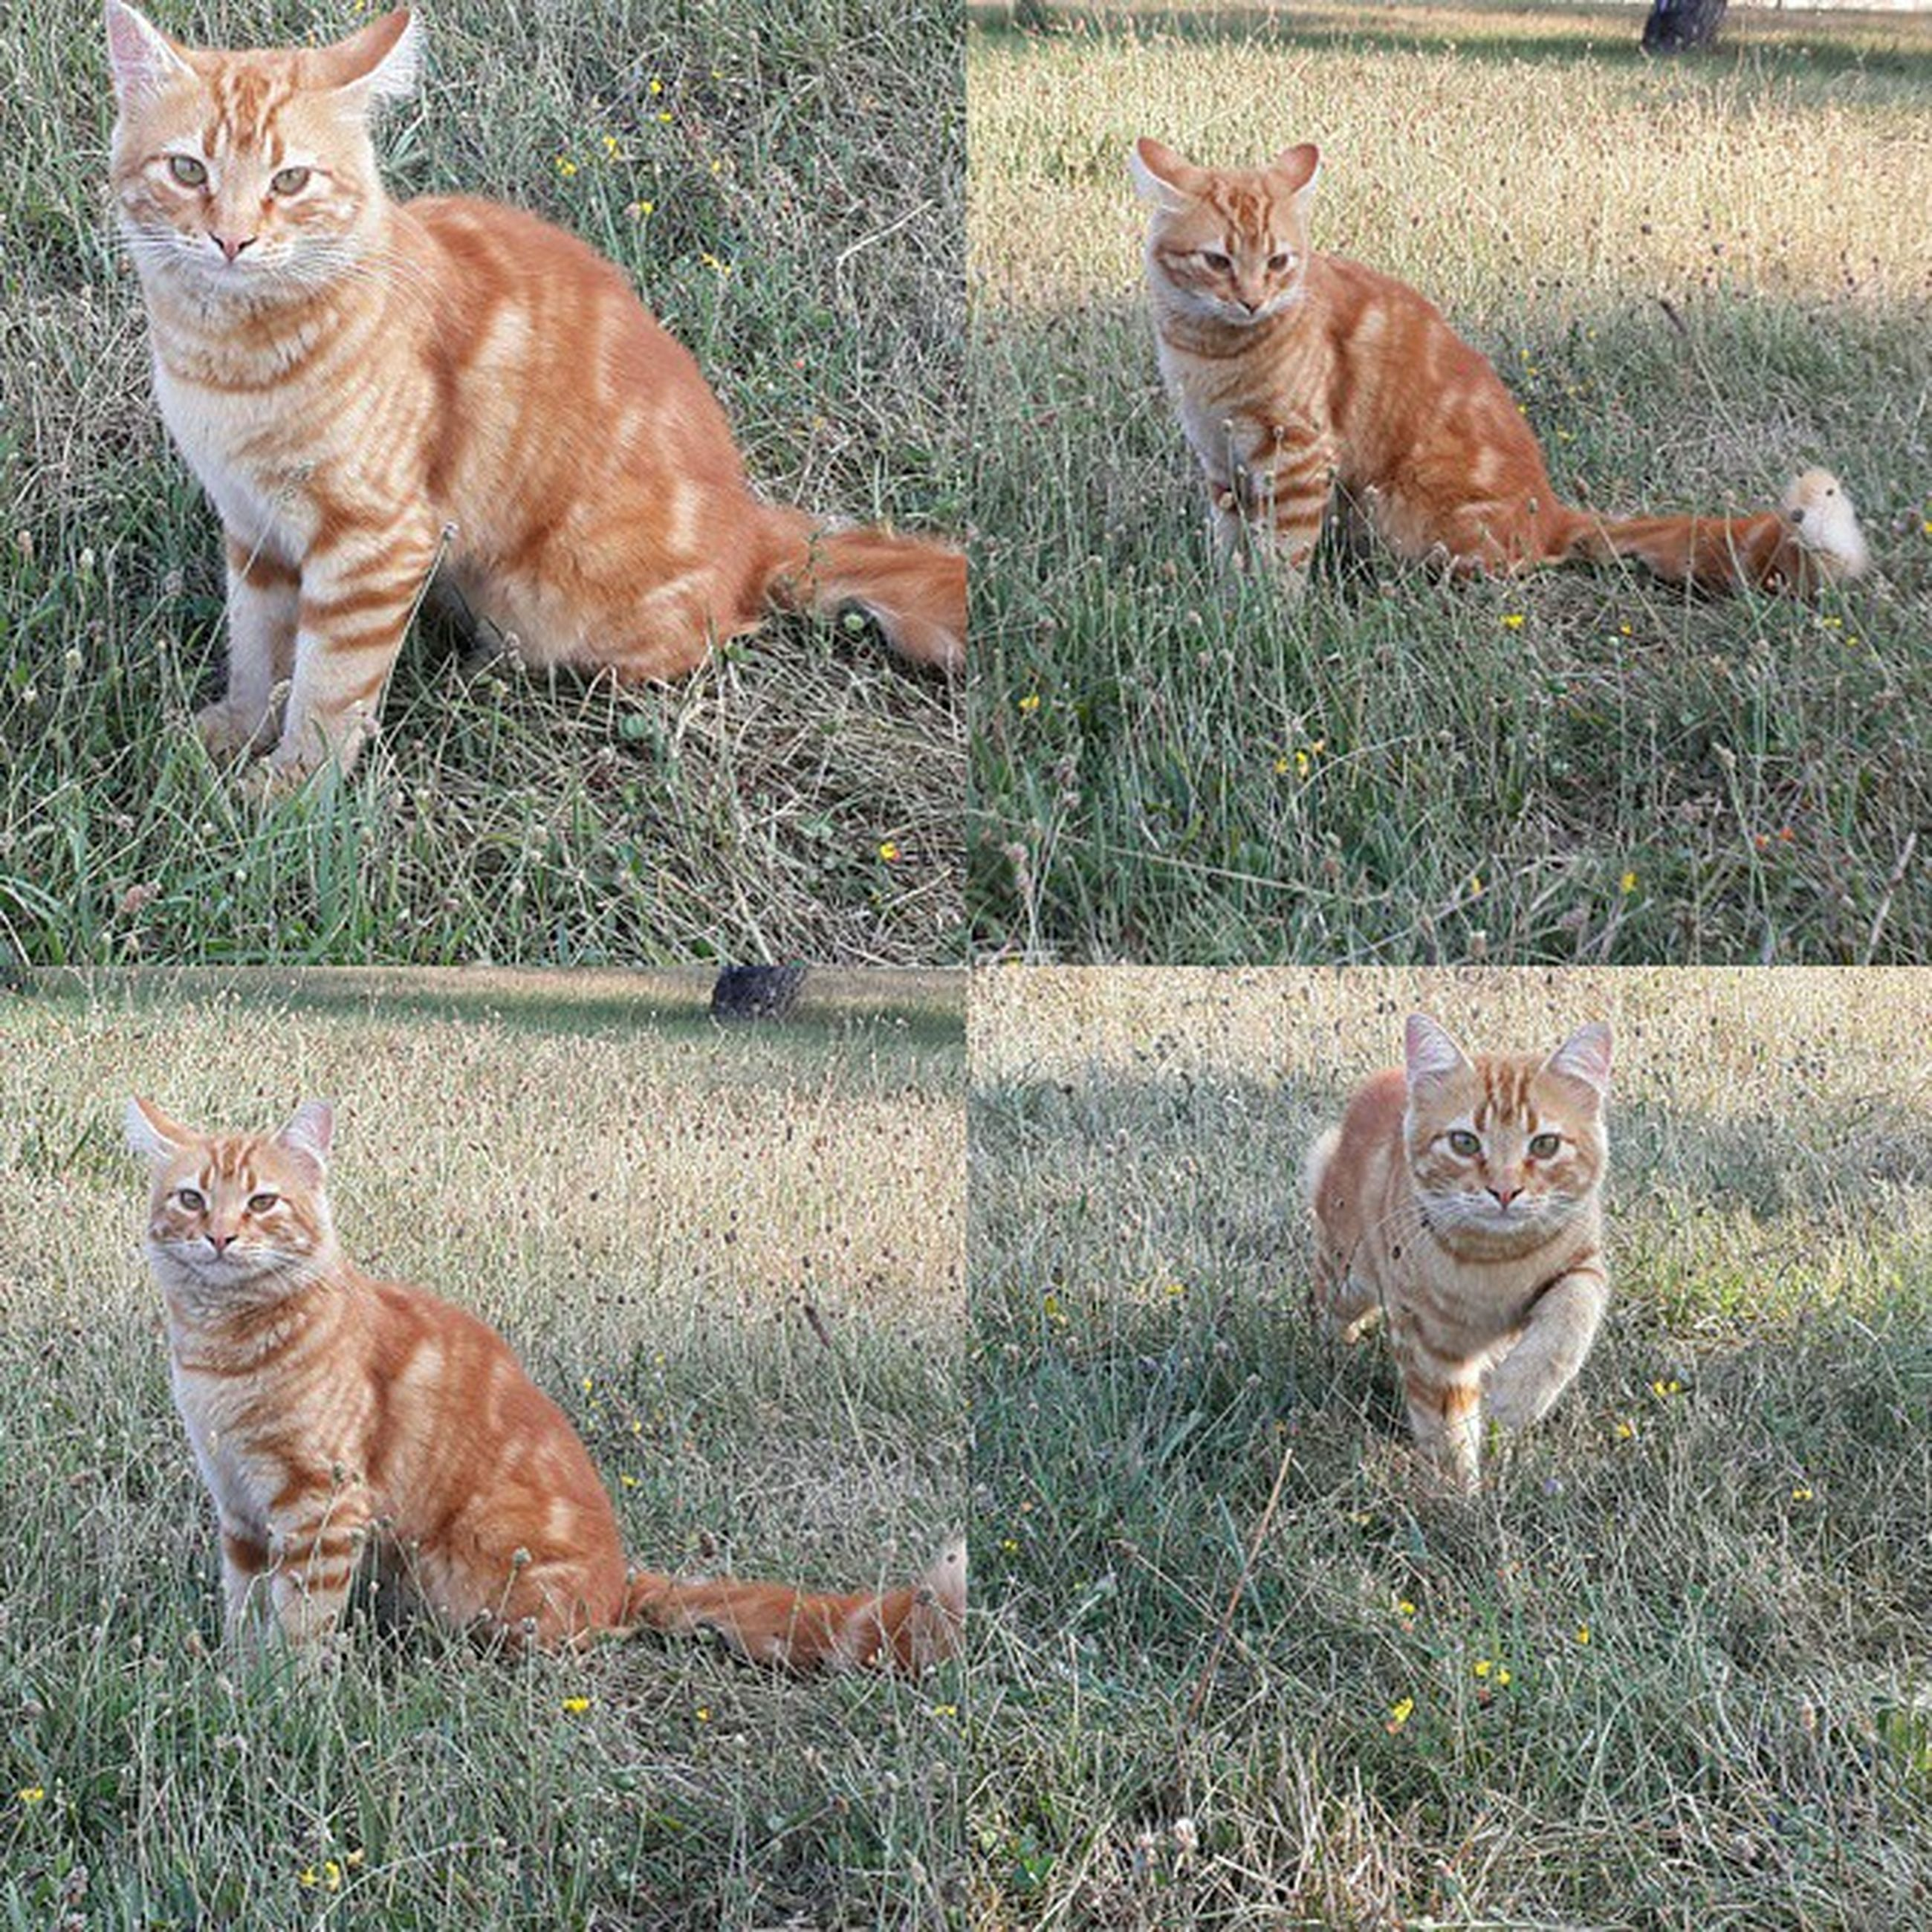 animal themes, mammal, domestic animals, grass, pets, two animals, field, feline, domestic cat, cat, grassy, one animal, portrait, looking at camera, green color, relaxation, nature, brown, no people, full length